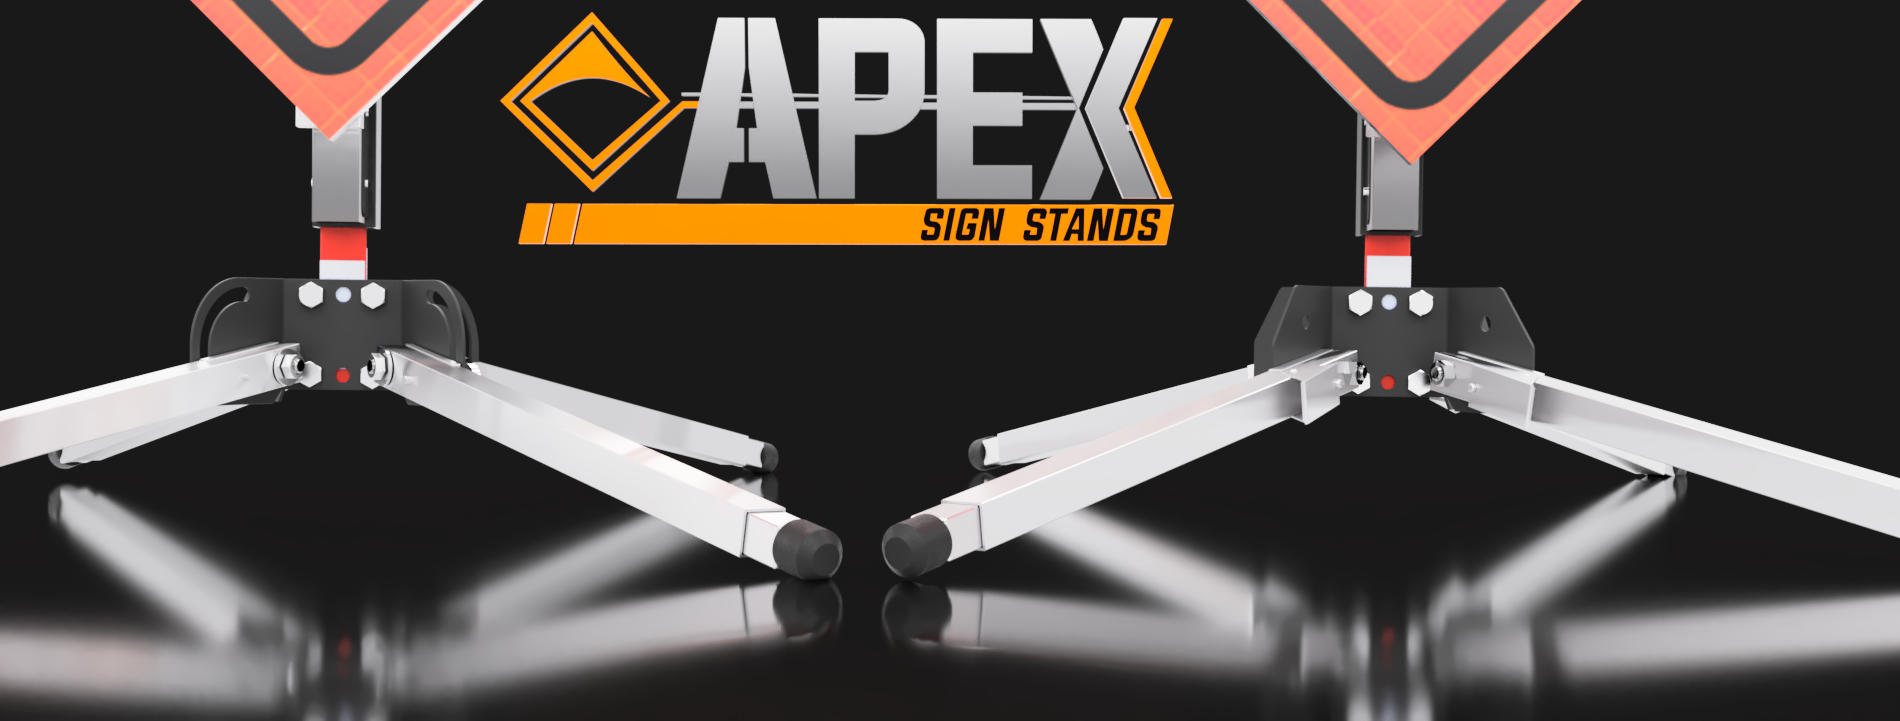 apex sign stands traffic control sign stands